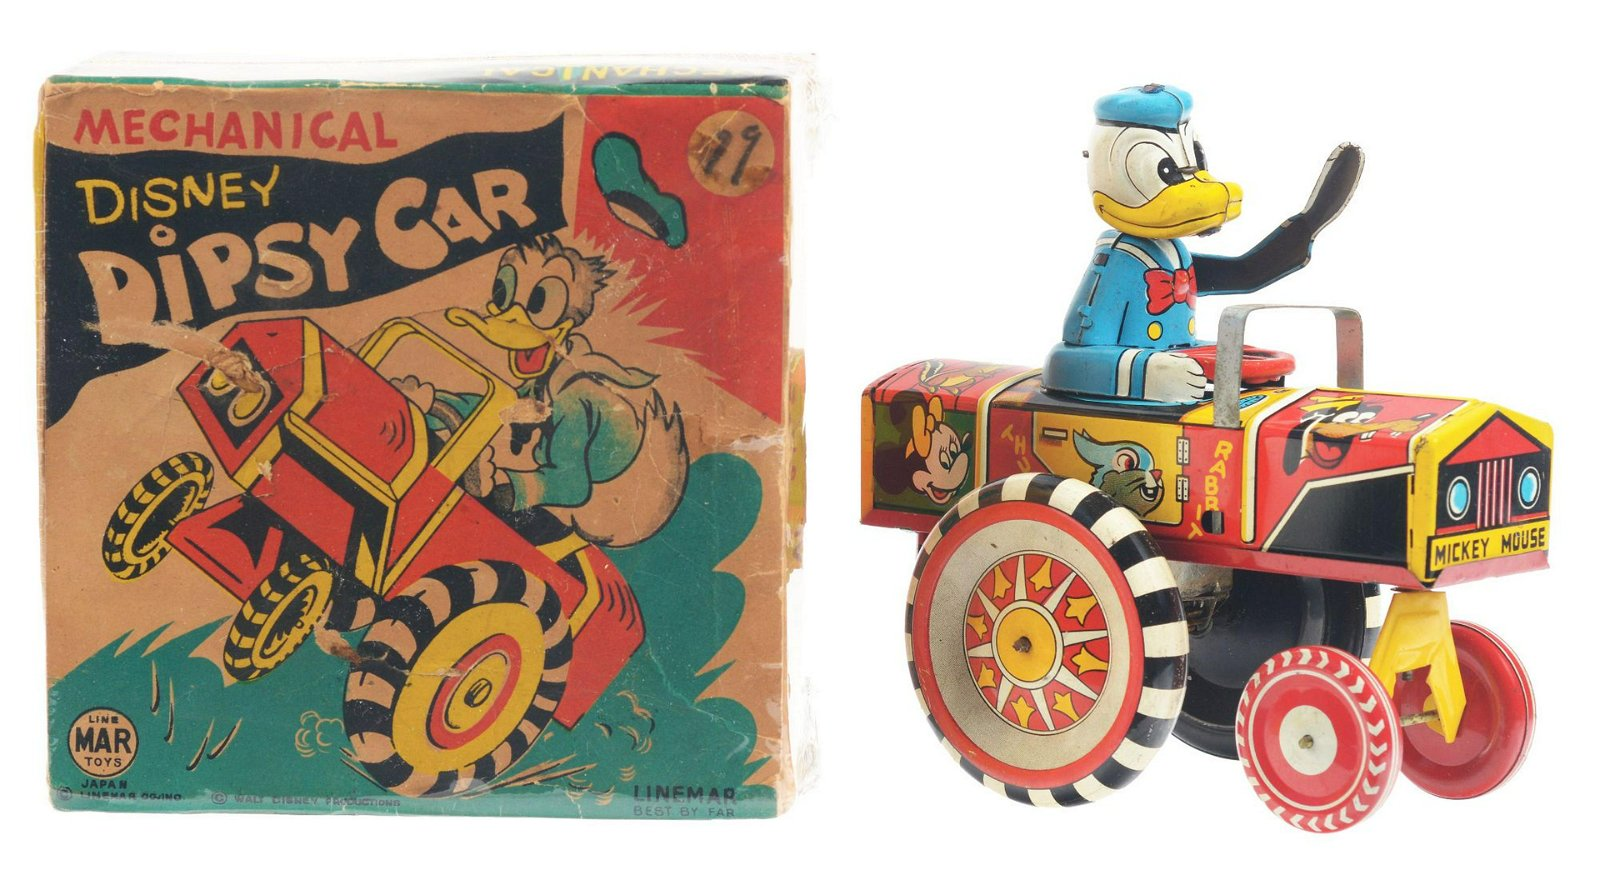 Linemar Walt Disney Tin-Litho Wind-Up Donald Duck Dipsy